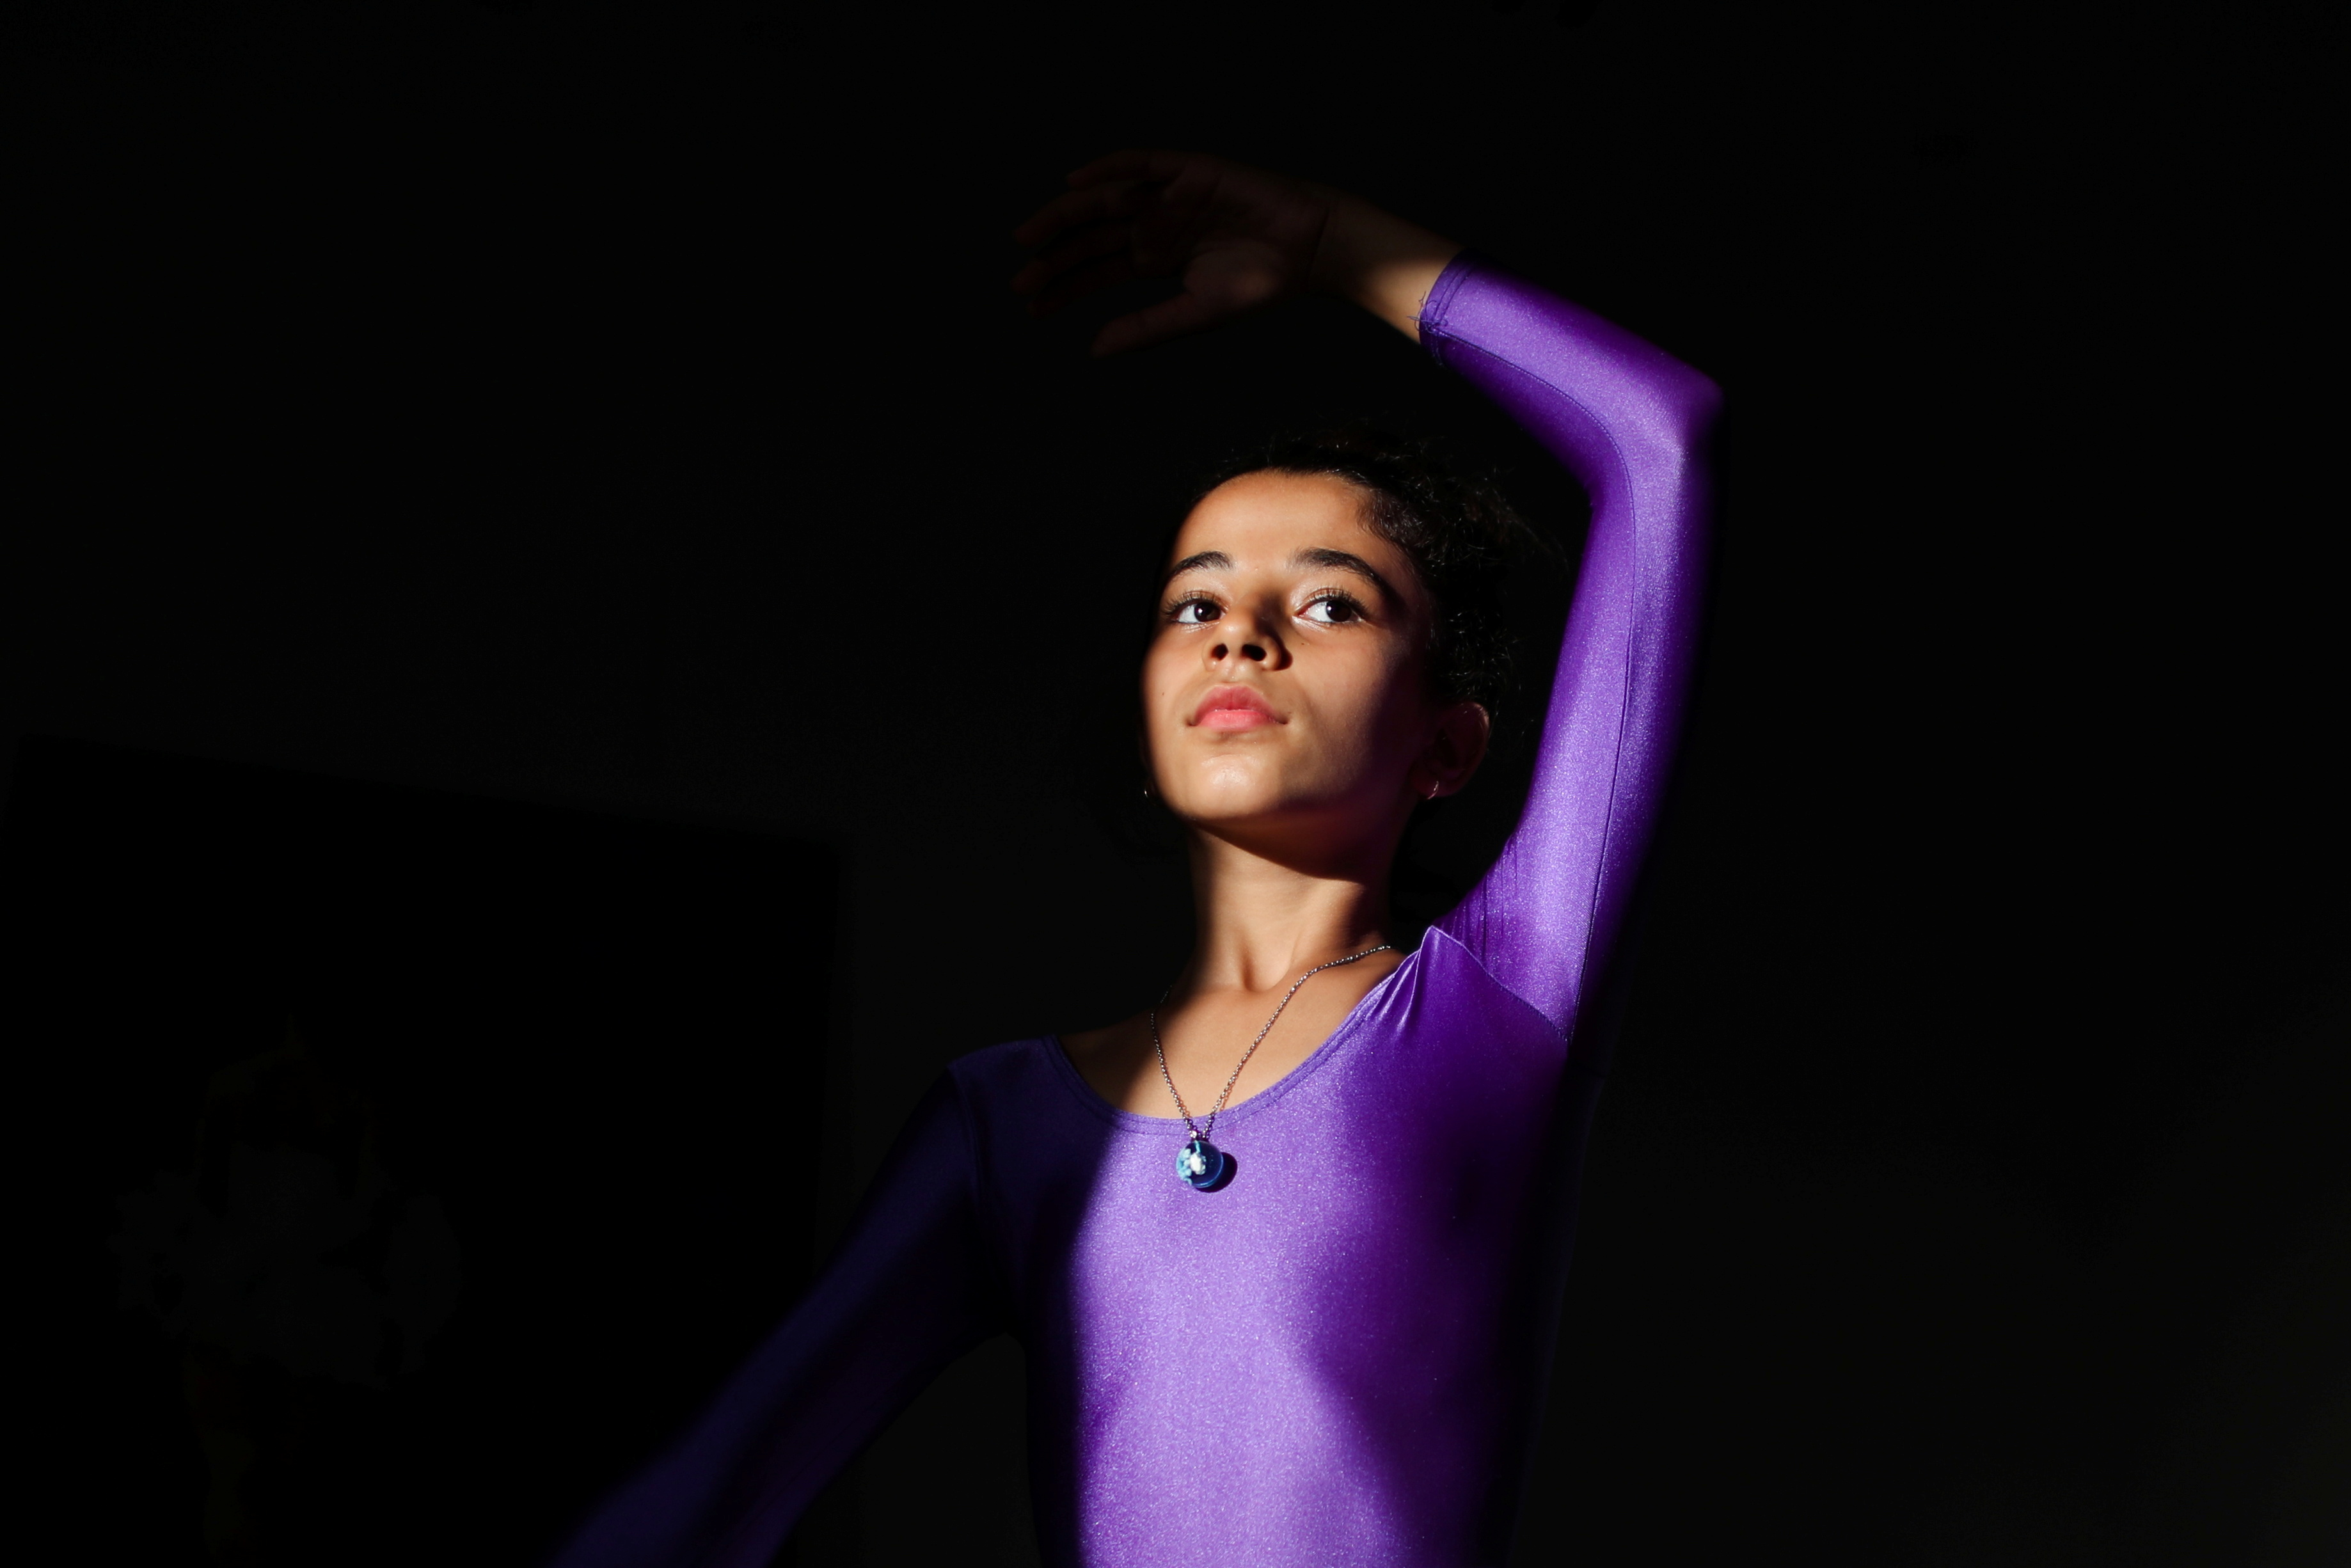 A Palestinian Maya Harb takes part in ballet dancing at her home in Gaza City, September 8, 2021.REUTERS/Mohammed Salem